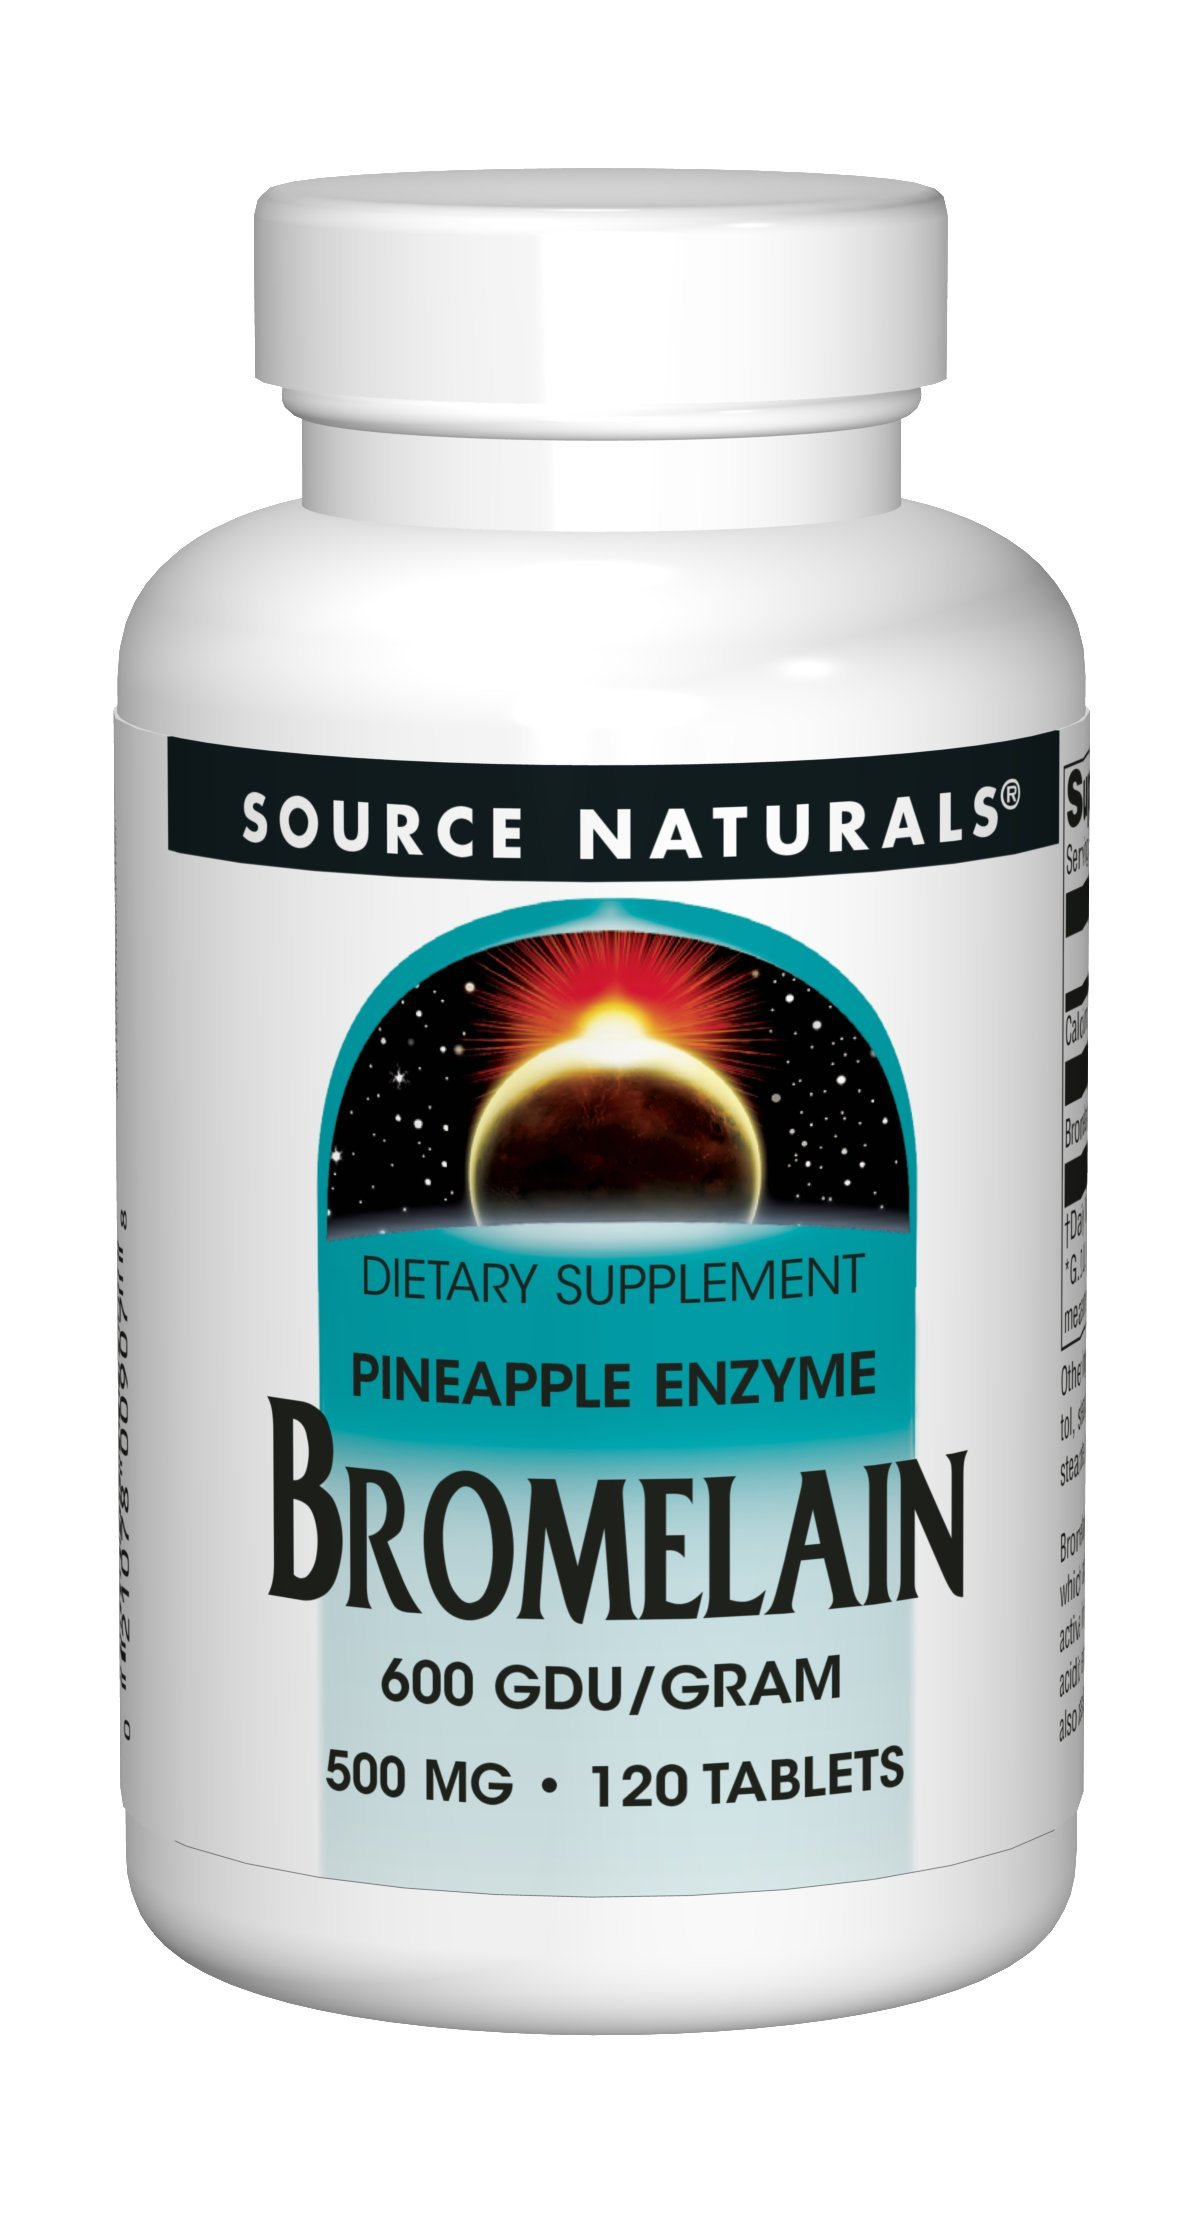 Source Naturals Bromelain 500mg Proteolytic Enzyme Supplement - 120 Tablets (Pack of 2)